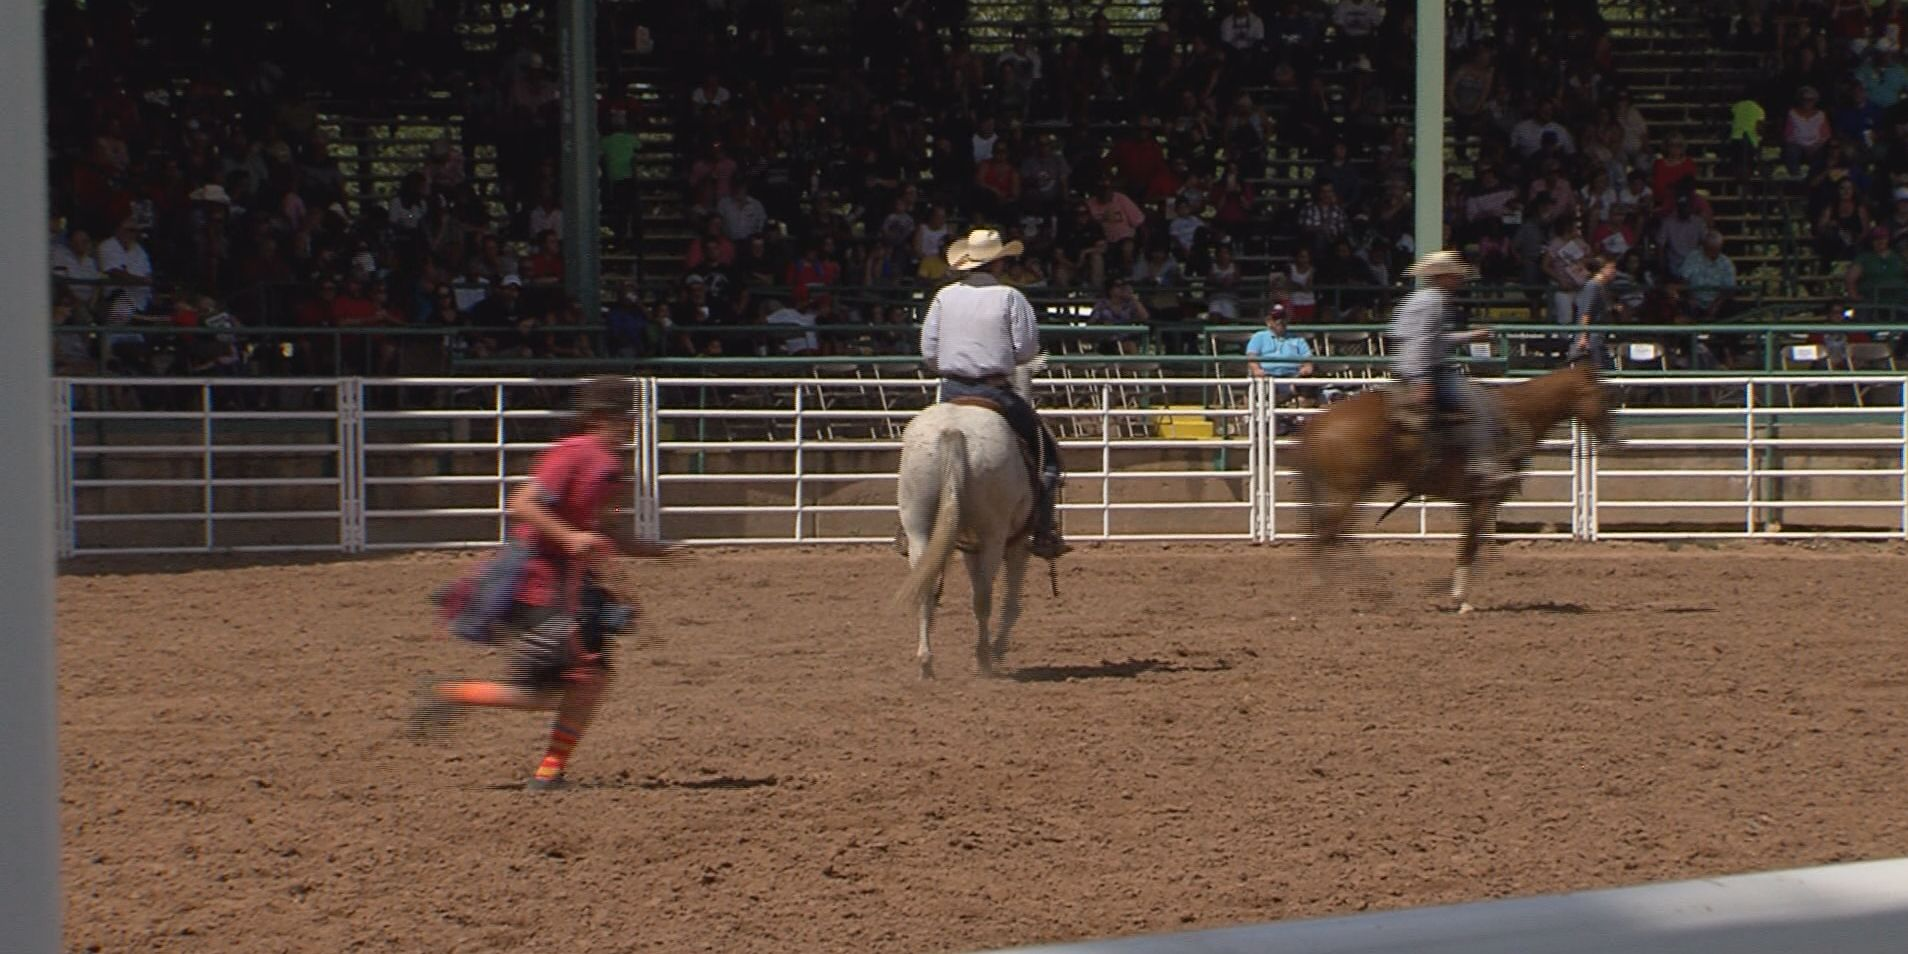 75th Annual Boys Ranch Rodeo on Saturday